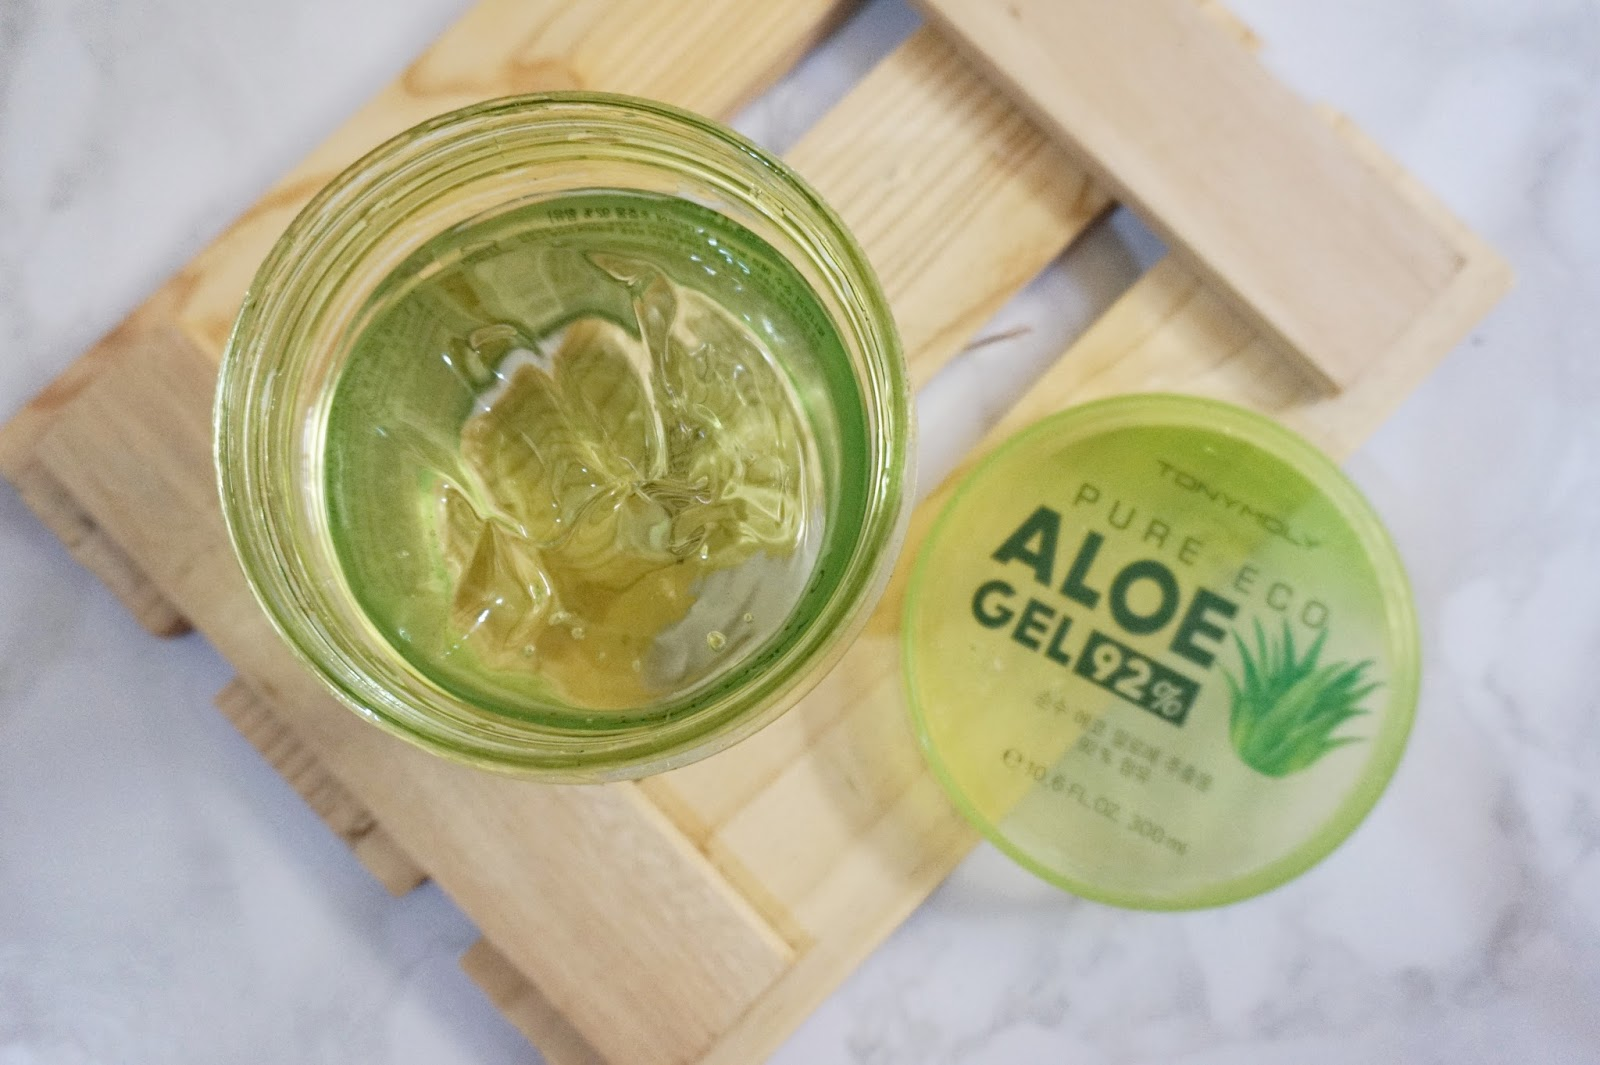 tony moly pure eco aloe gel review